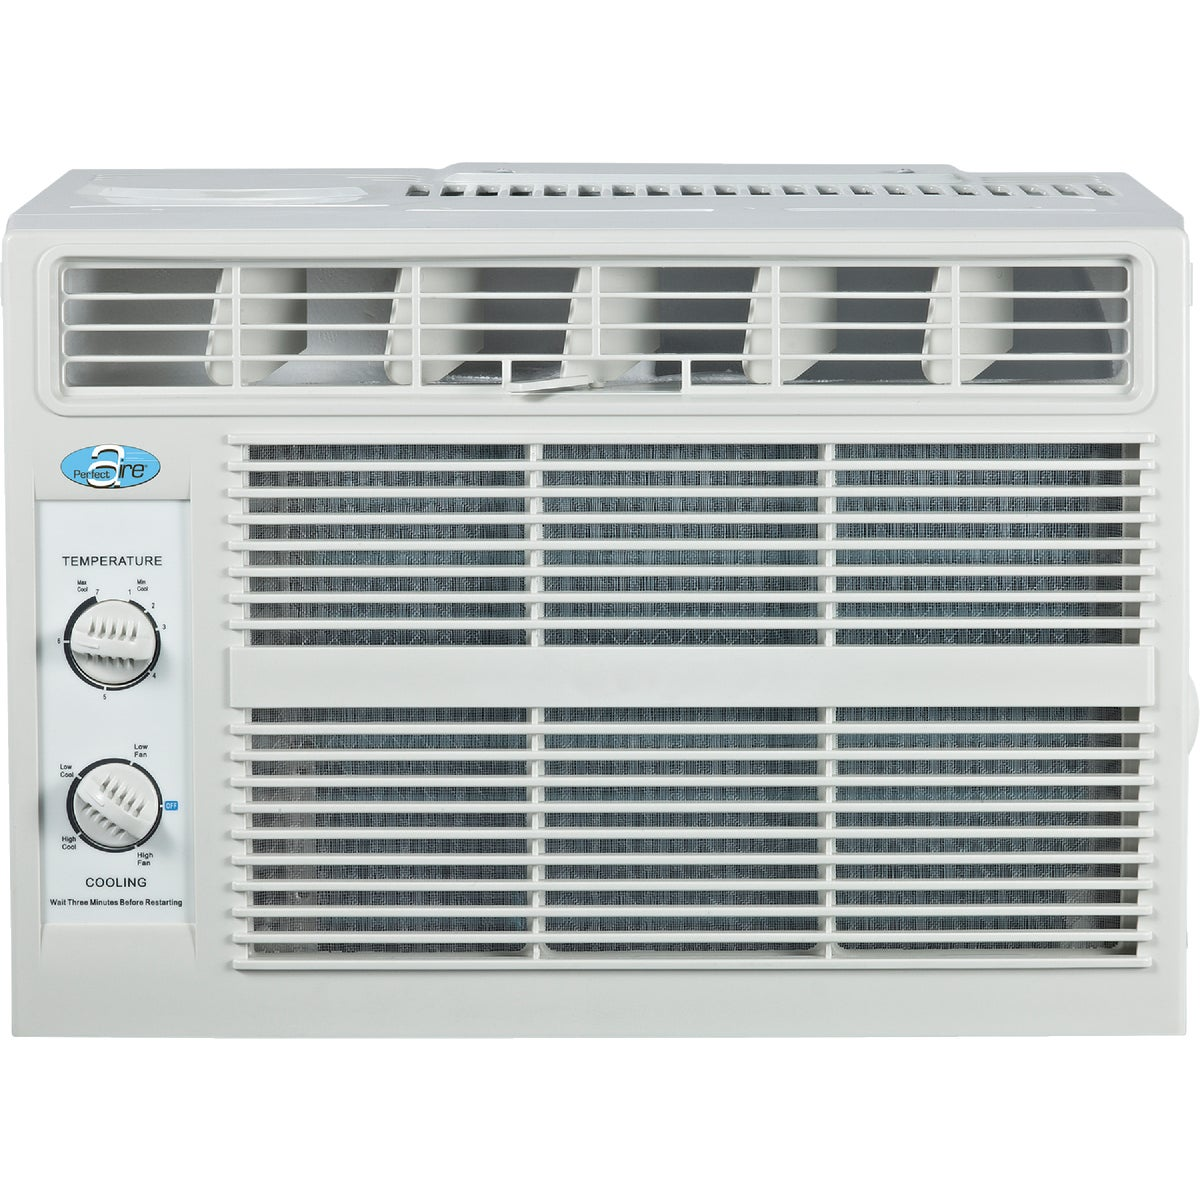 5000BTU AIR CONDITIONER - PAC5000 by Perfect Aire